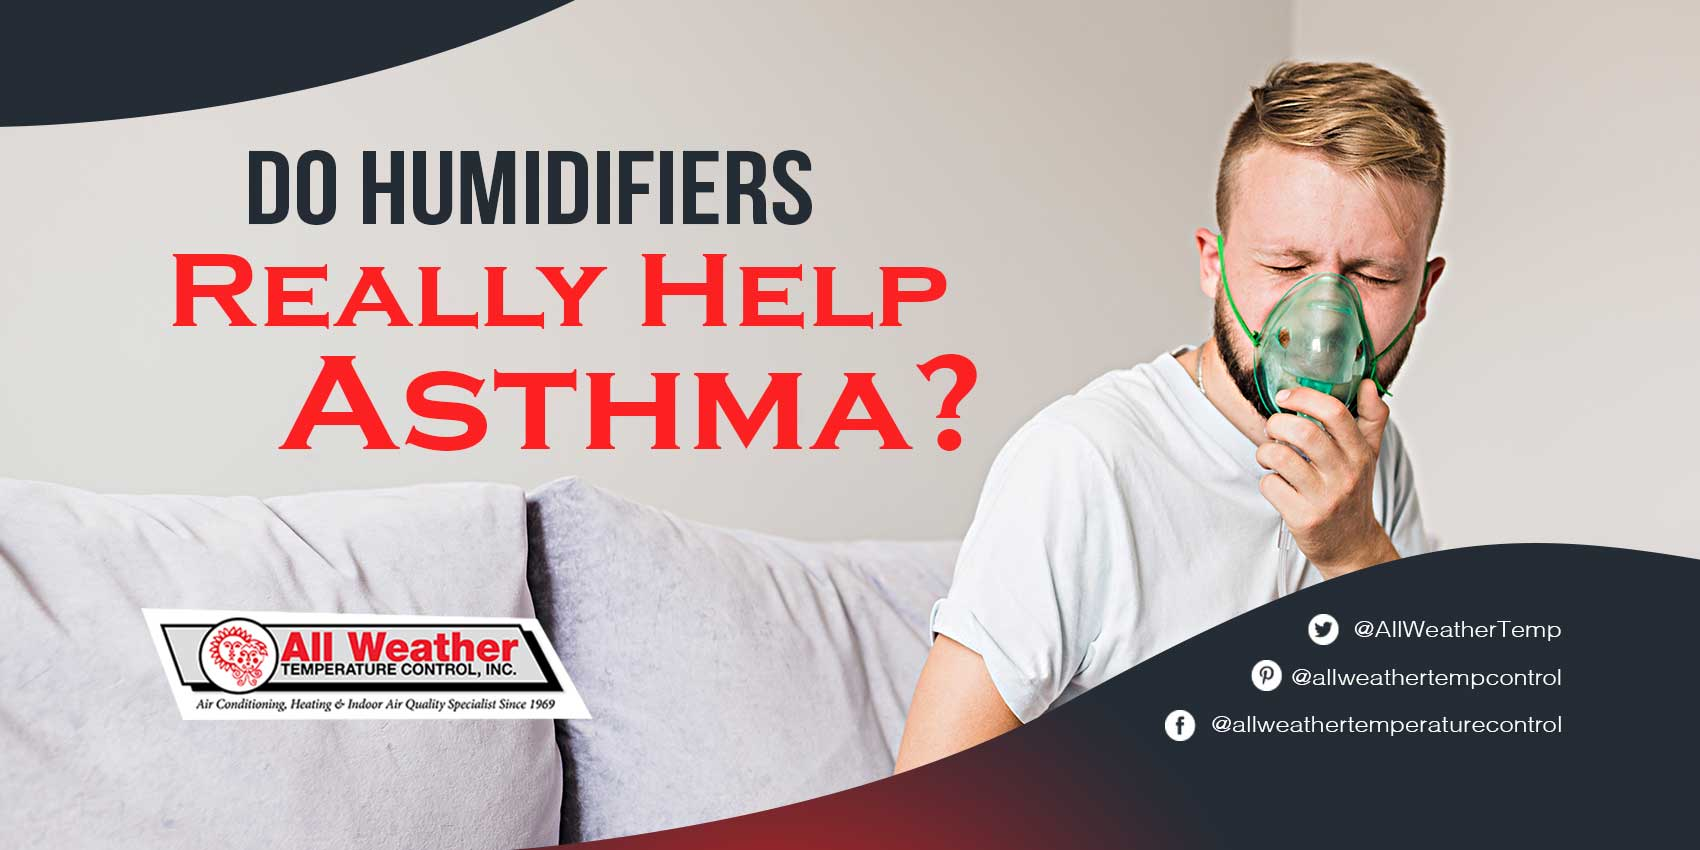 Do Humidifiers Really Help Asthma?